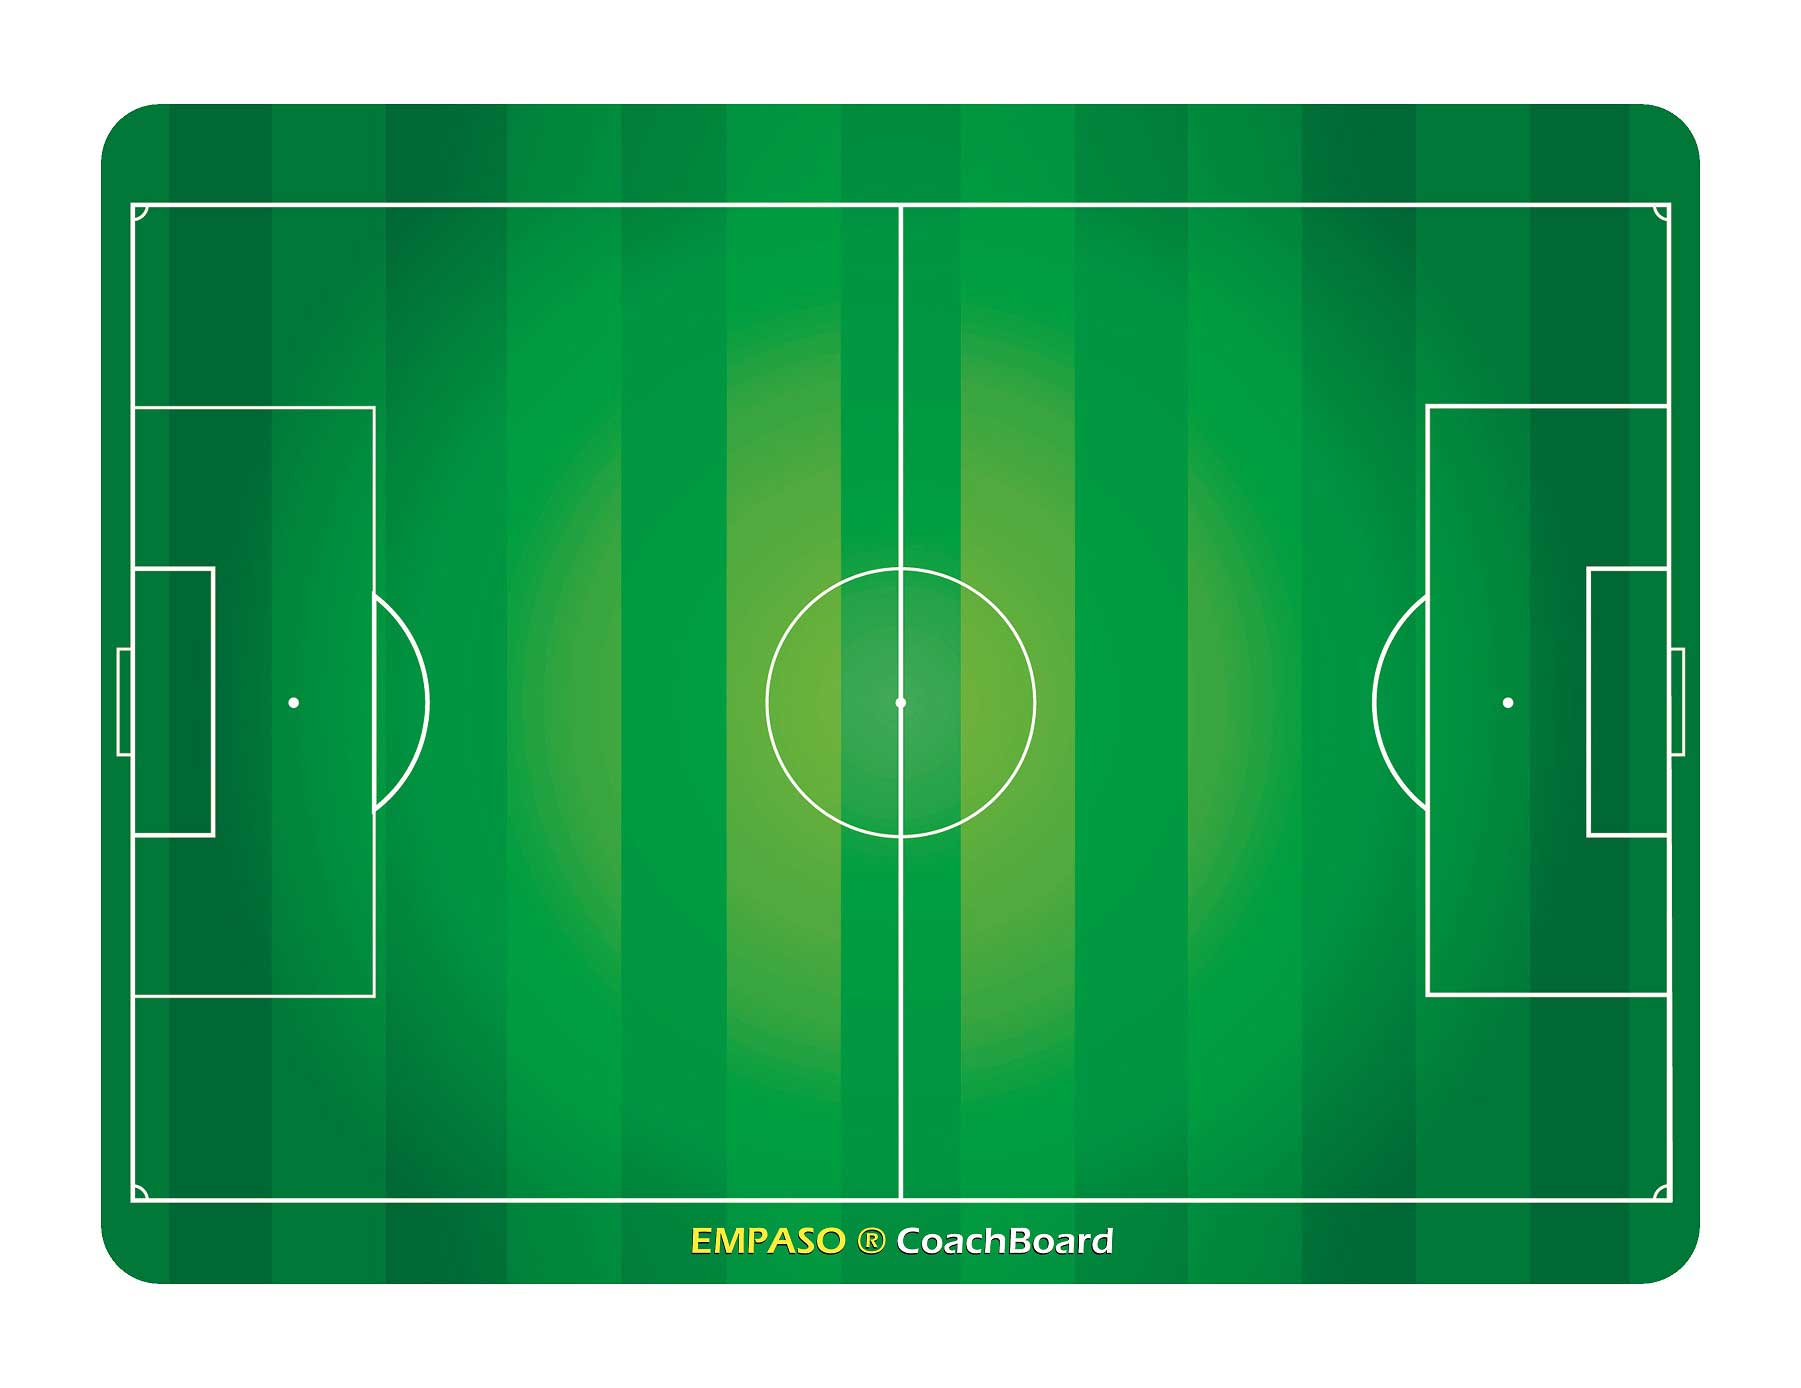 EMPASO Coach board - Coach Tactical Board – Football Coaching Board